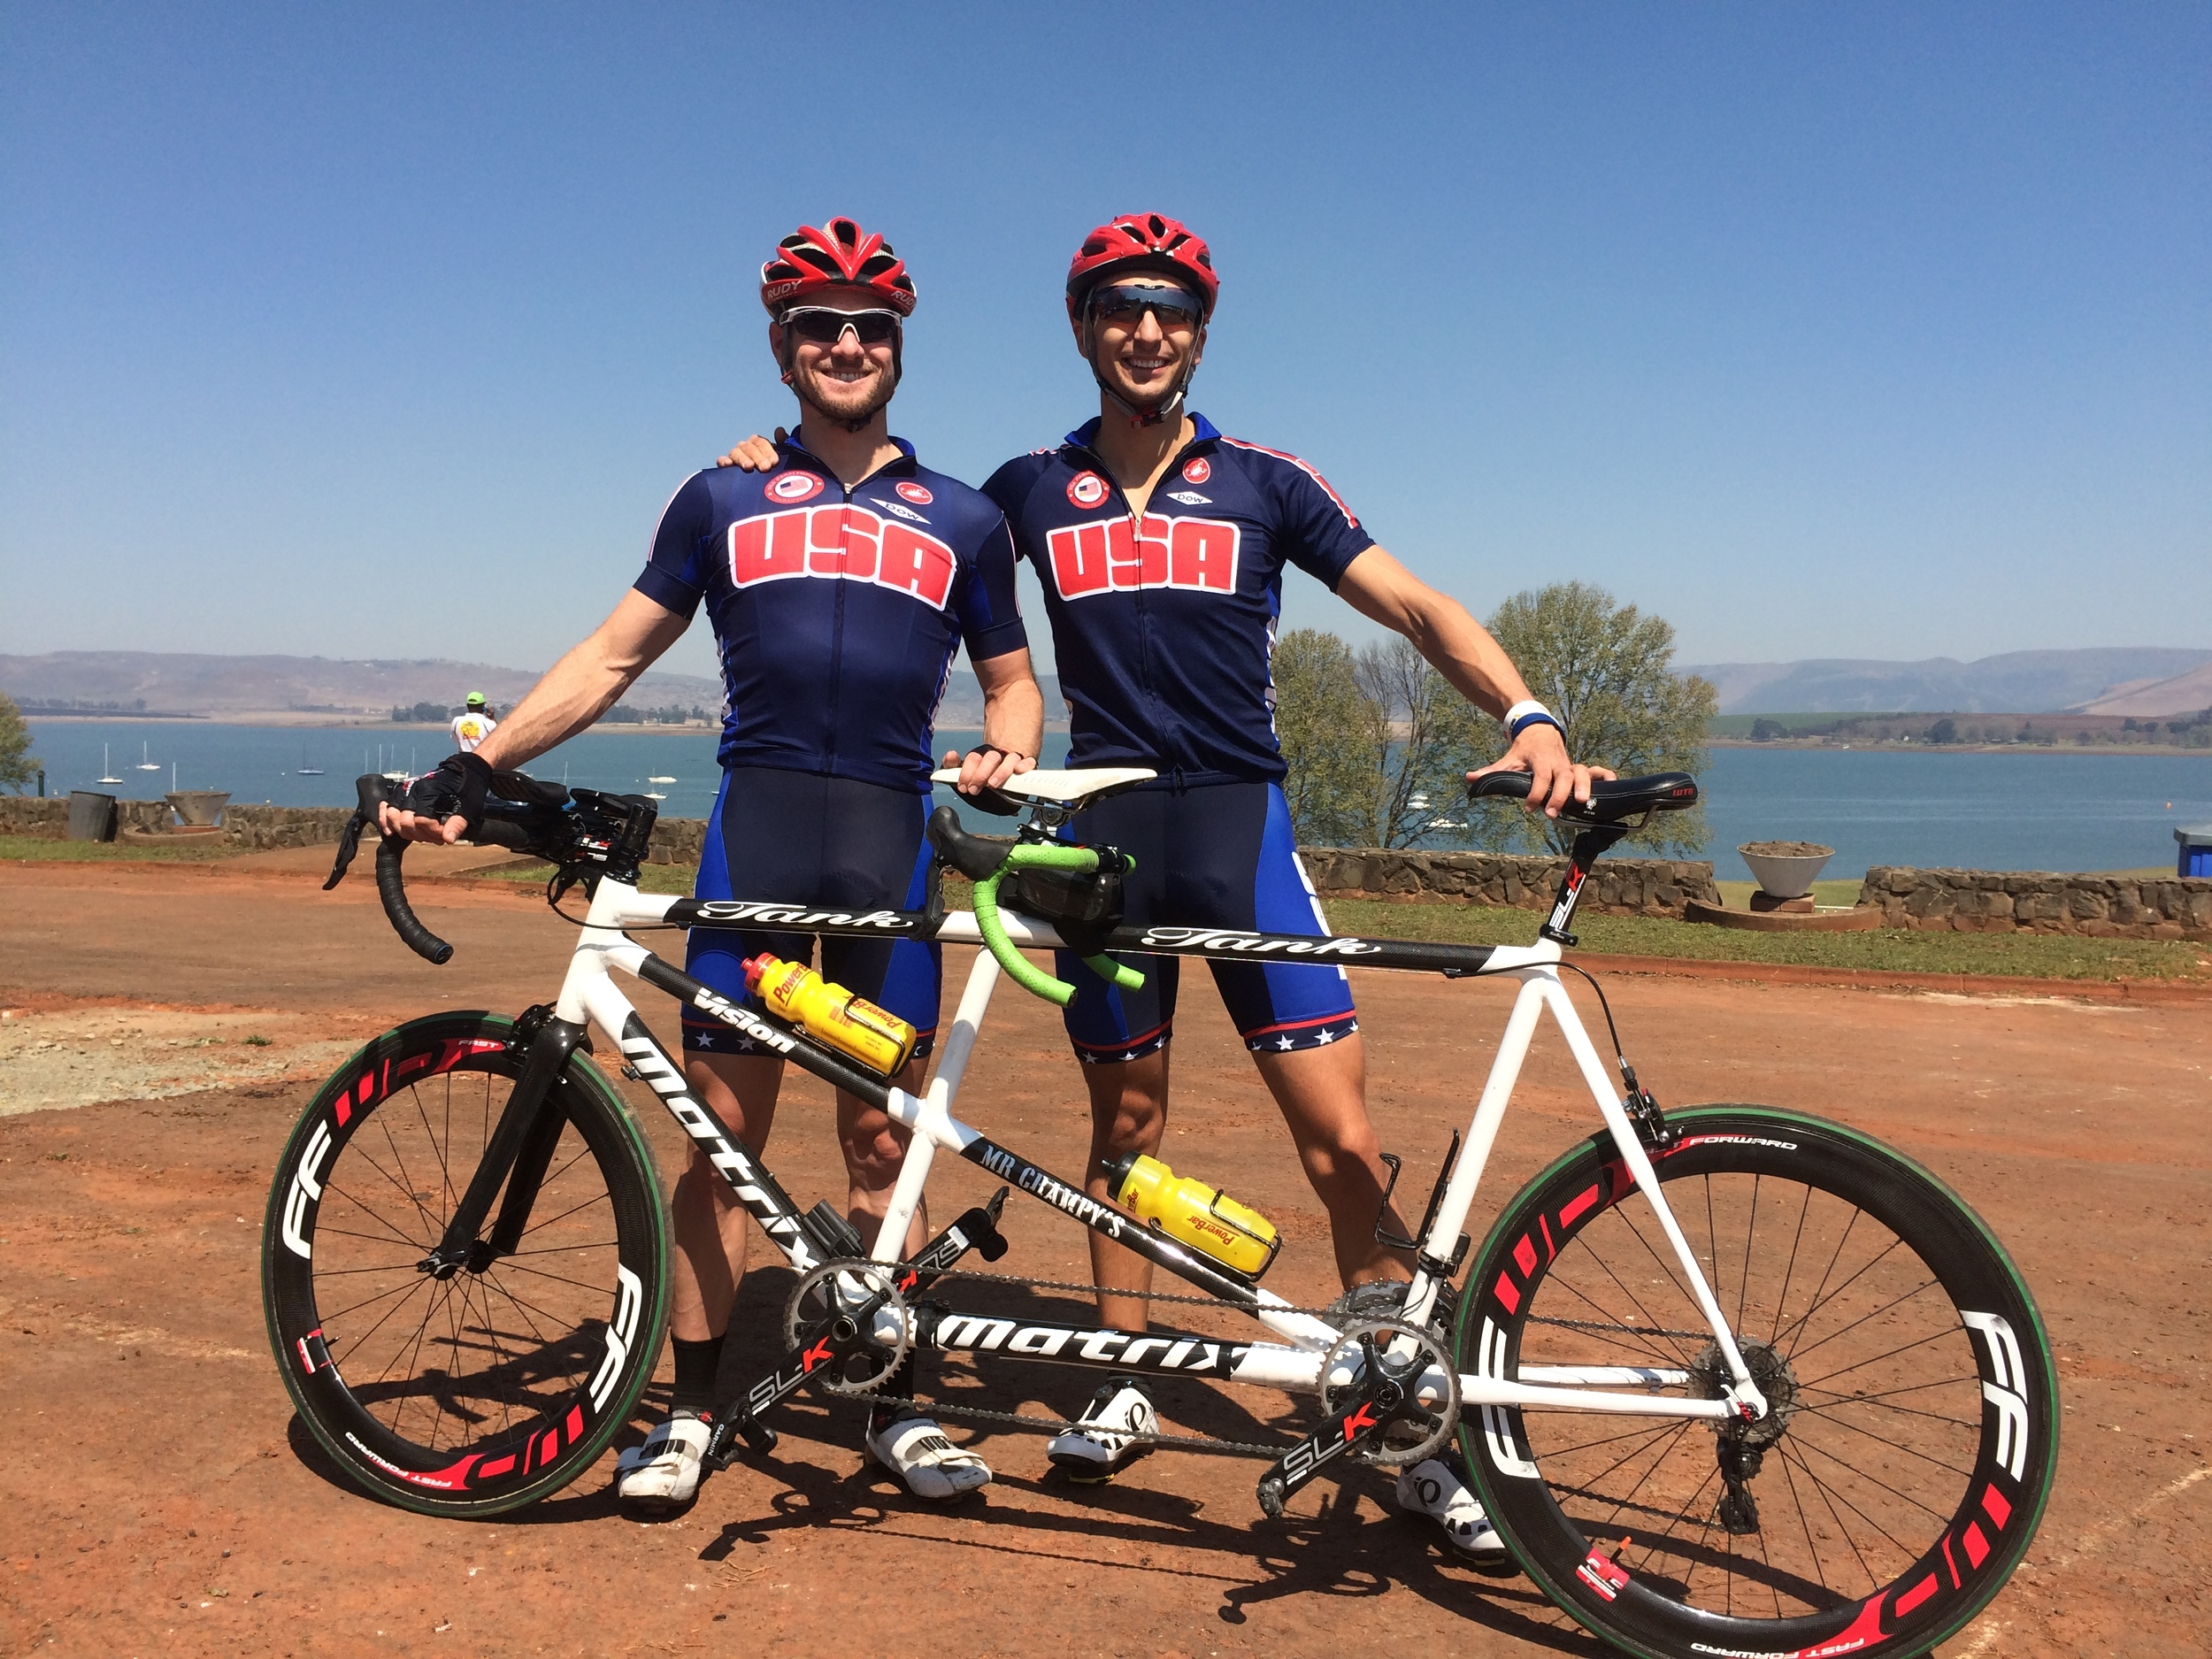 Ben (Colin)Collins and I preparing with Team USA for the UCI World Cup in South Africa (RSA)